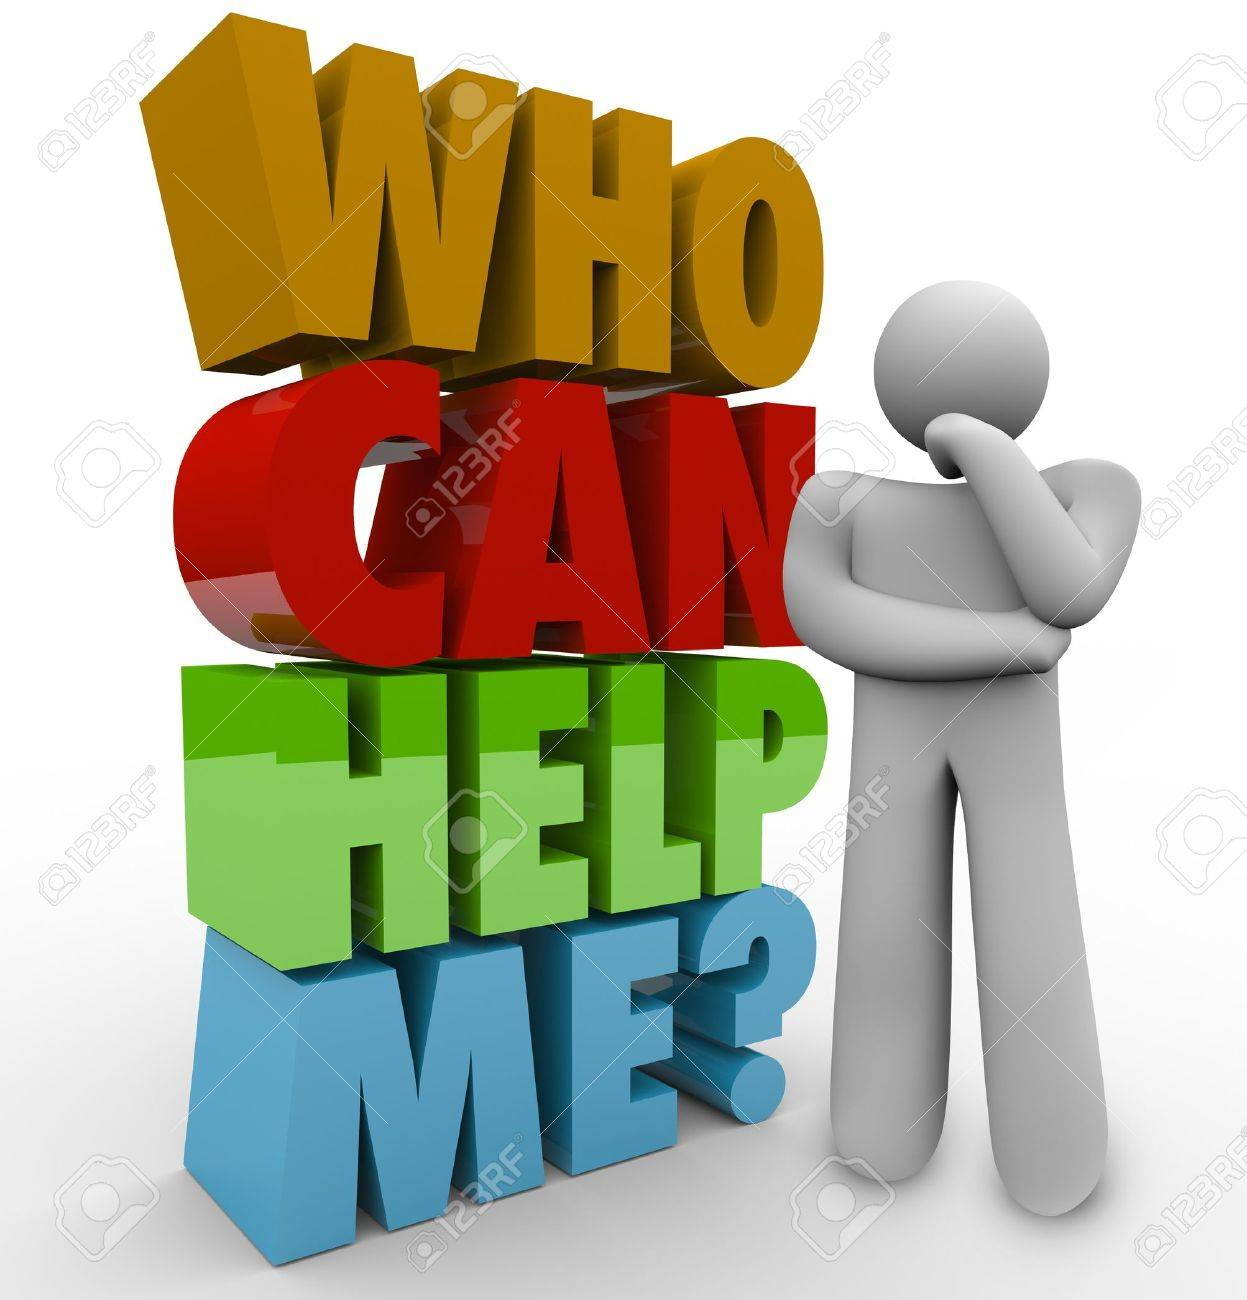 A thinker beside the words Who Can Help Me? to illustrate his need for customer service or support in solving a problem Stock Photo - 19912274